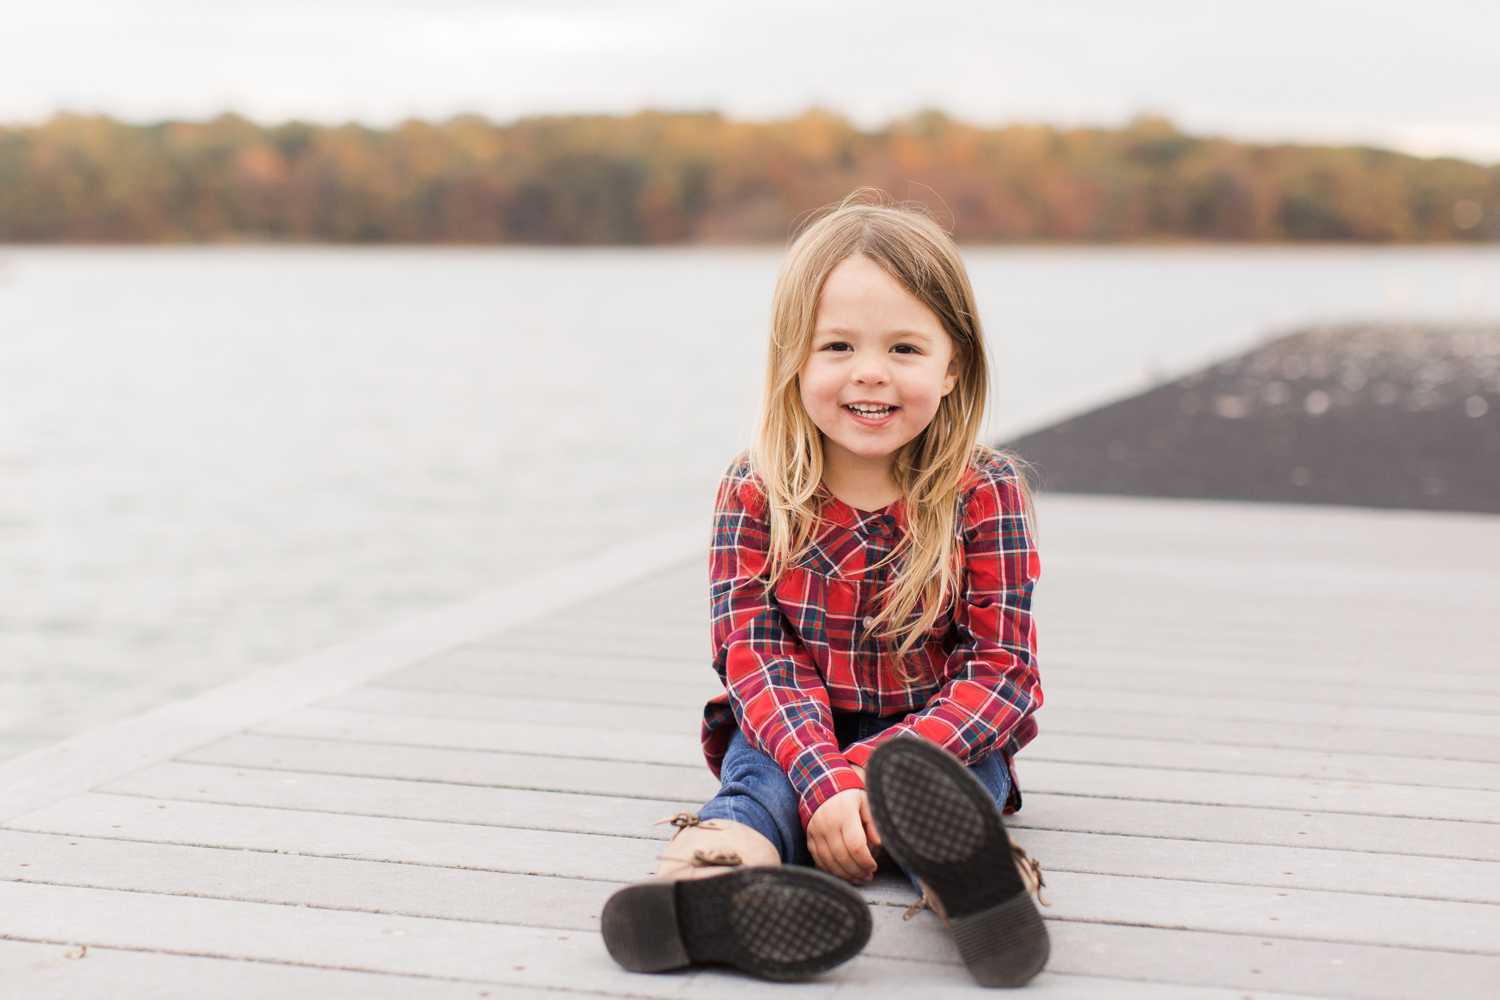 greenwich-connecticut-family-lifestyle-photographer-by-the-lake-girl-fall